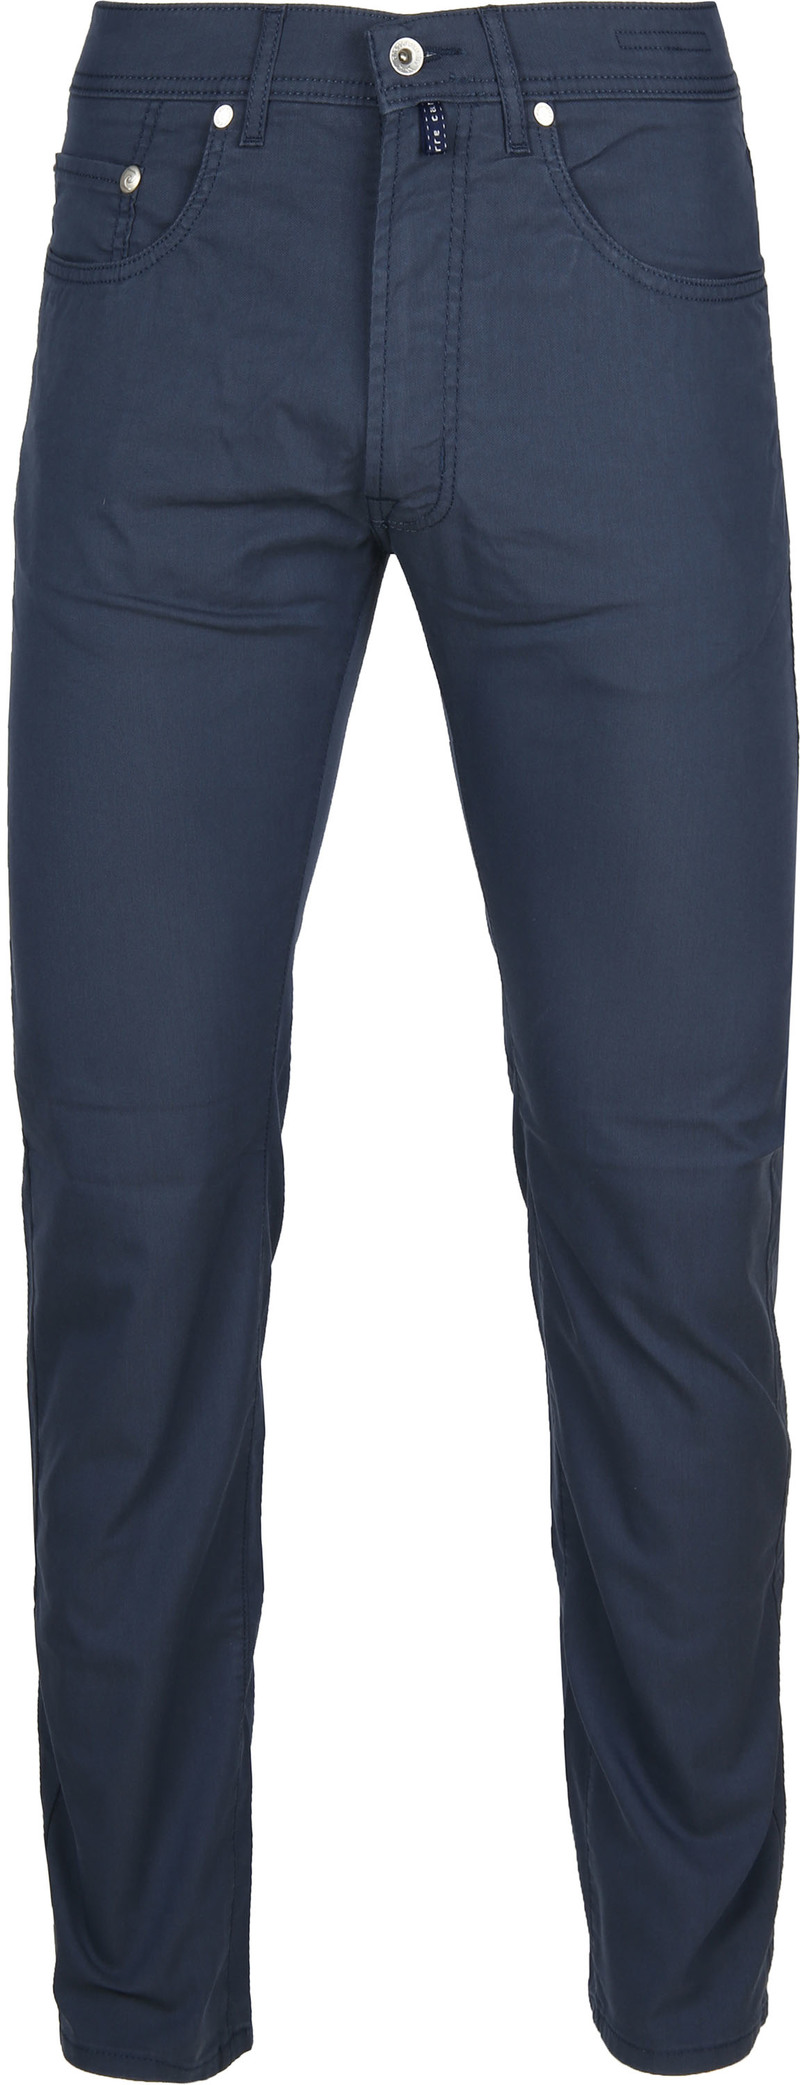 Pierre Cardin Jeans Lyon Indigo photo 0